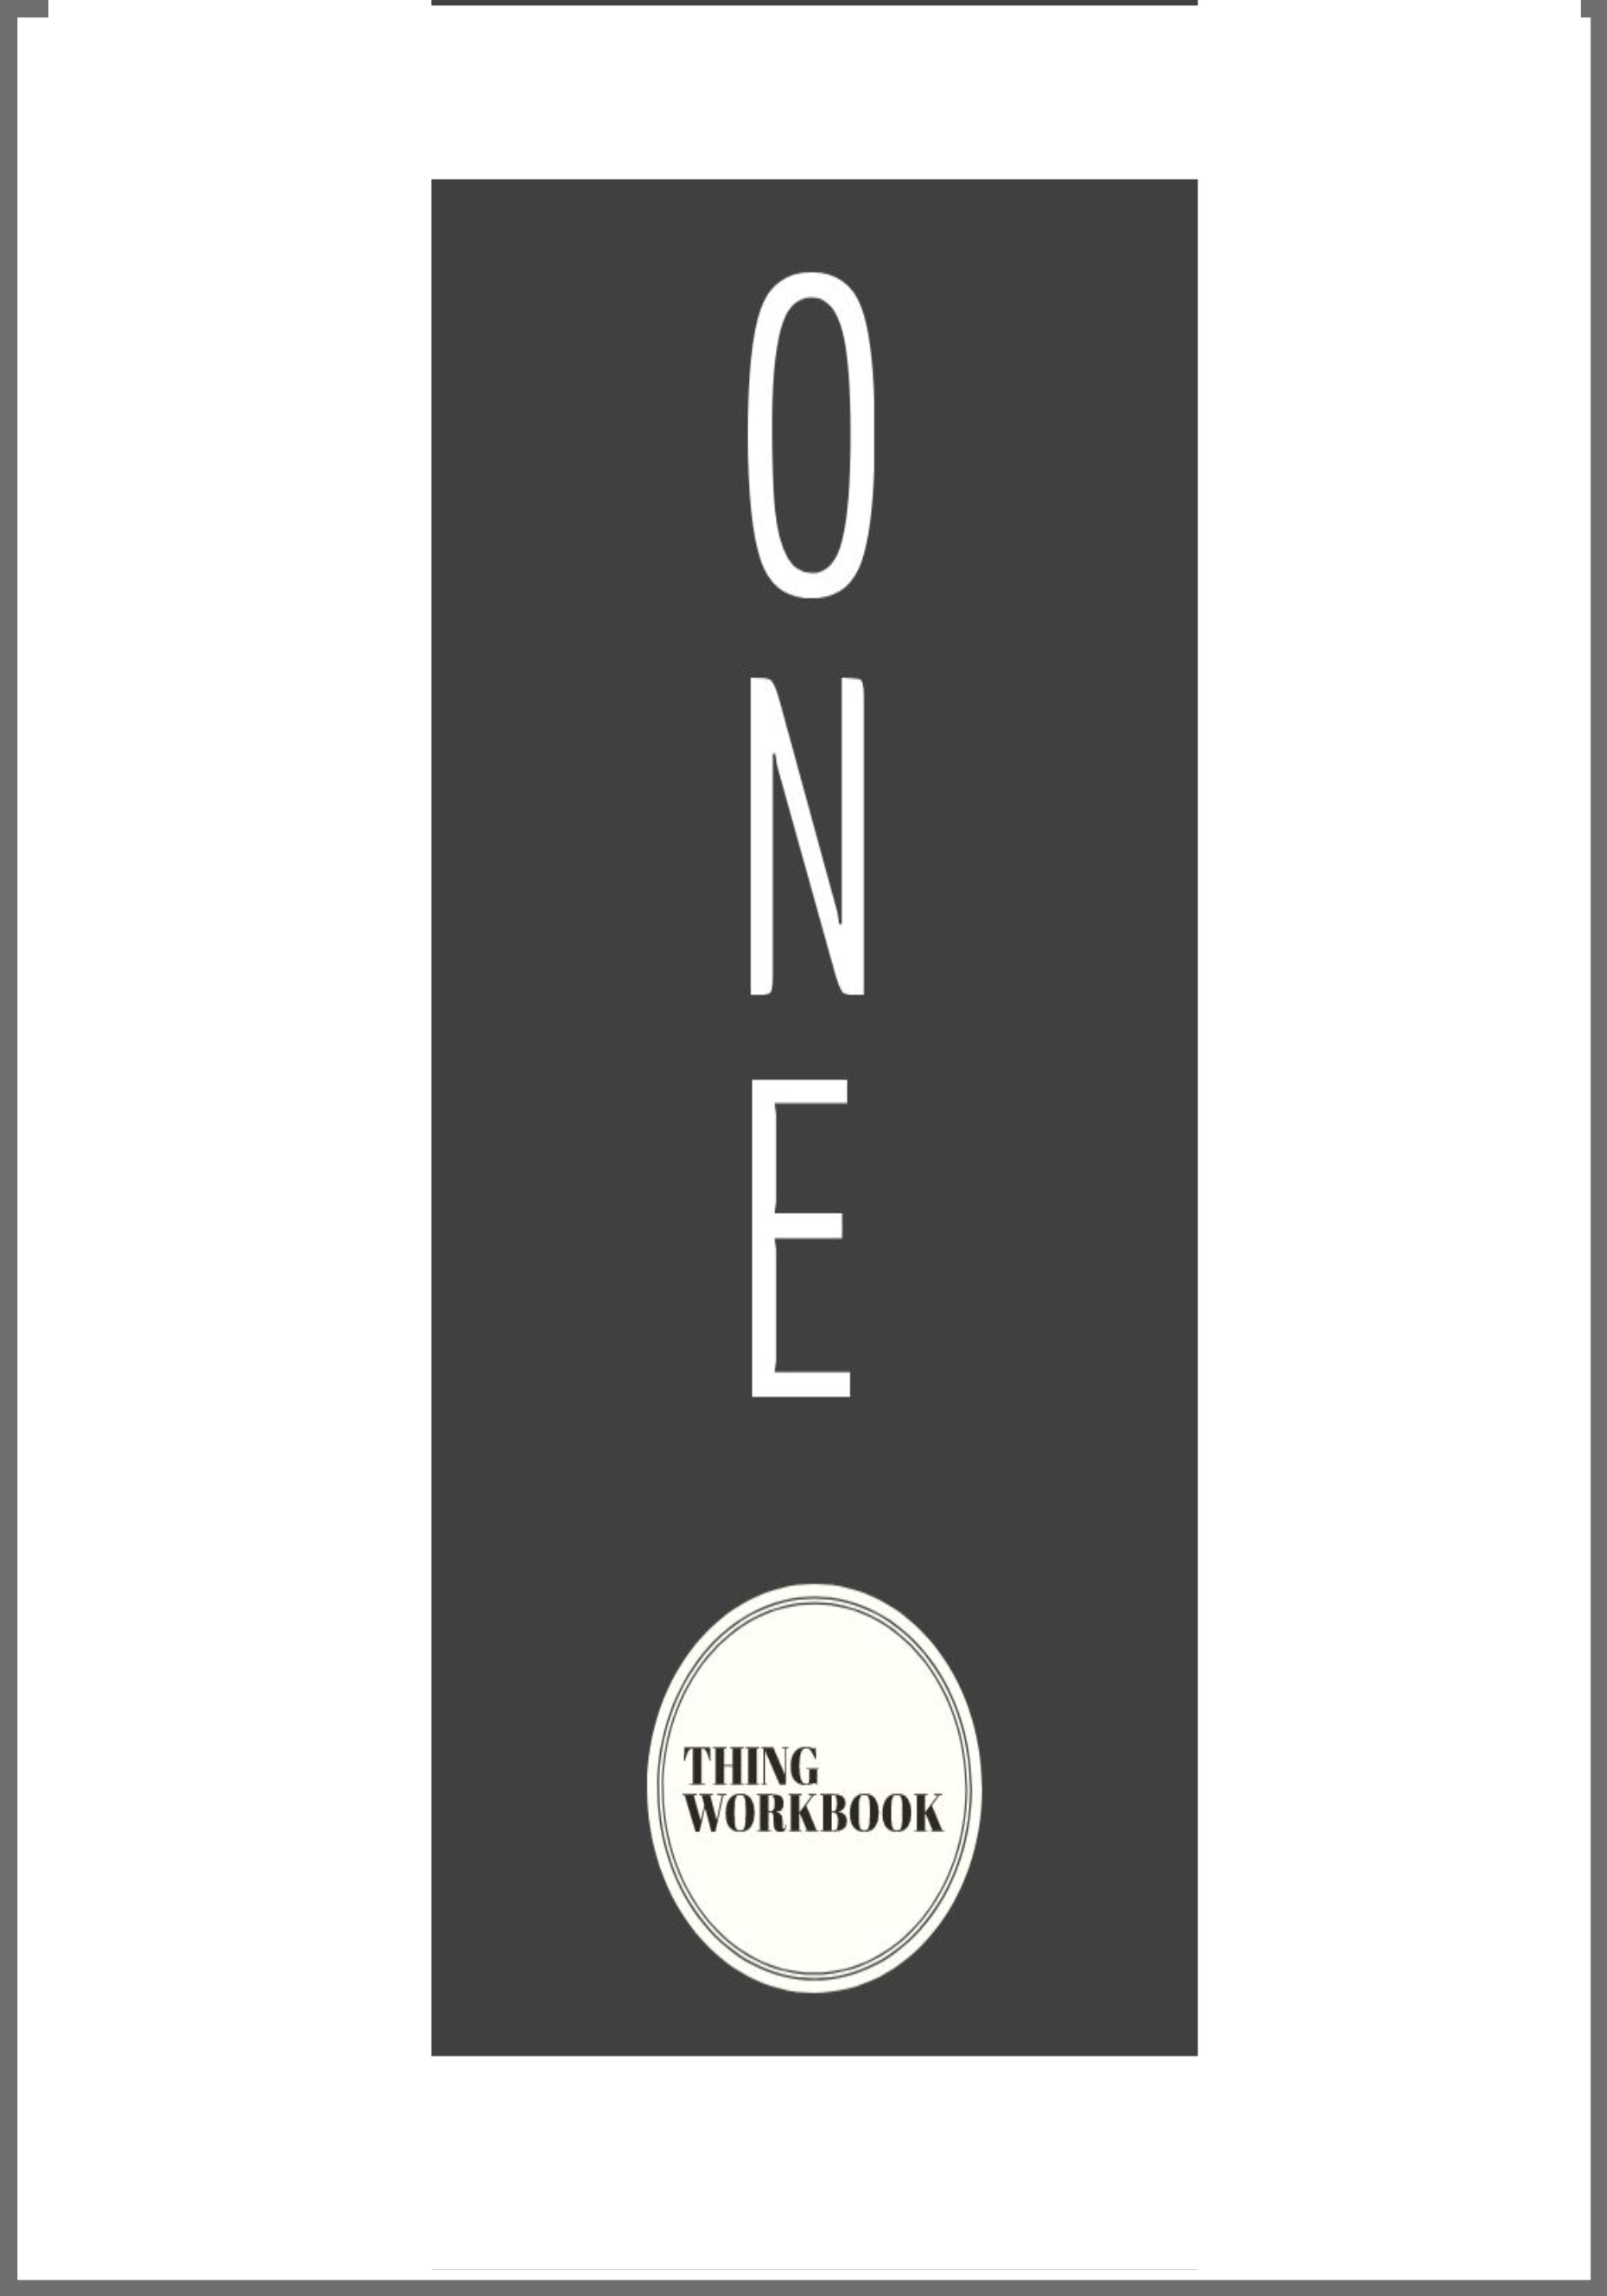 one thing workbook review